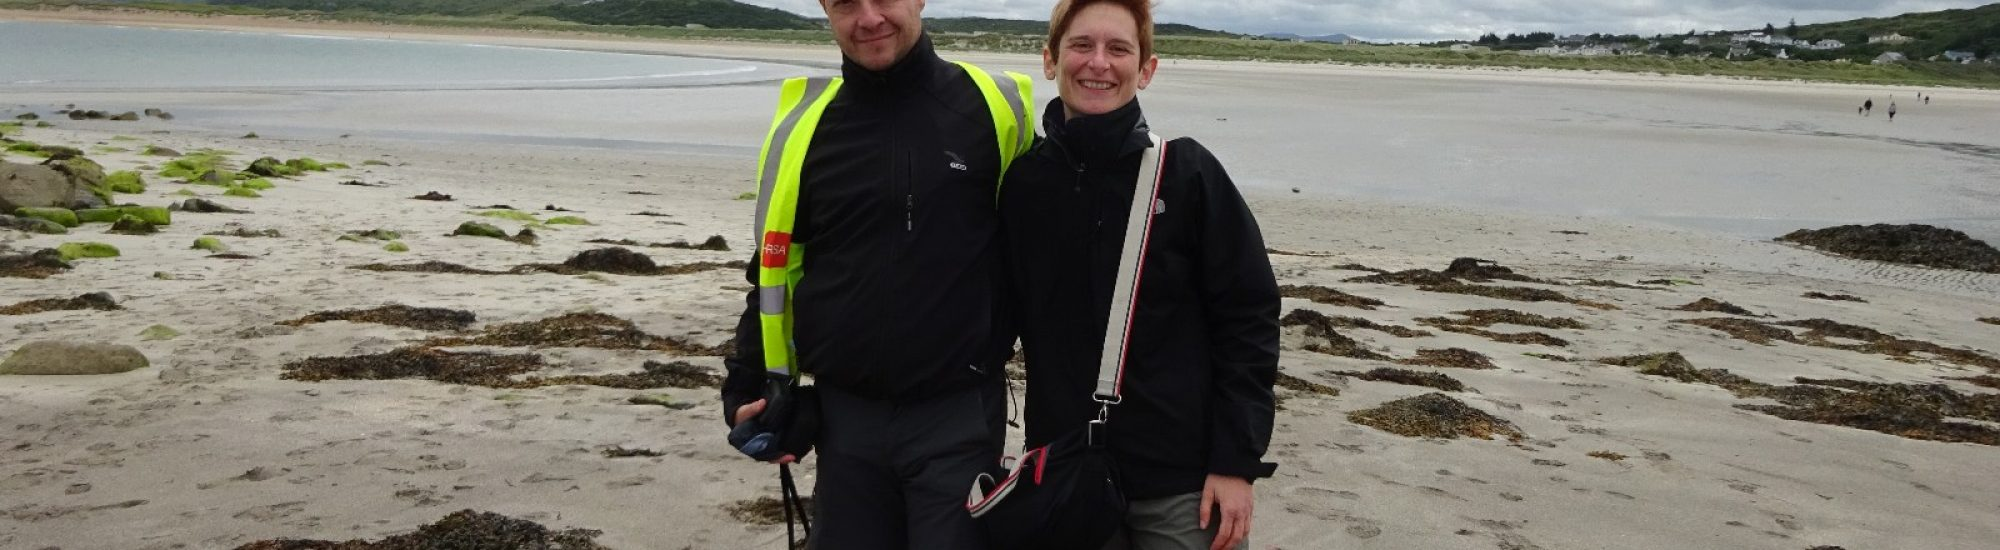 Cycling Holiday in Ireland, Simona and Marco